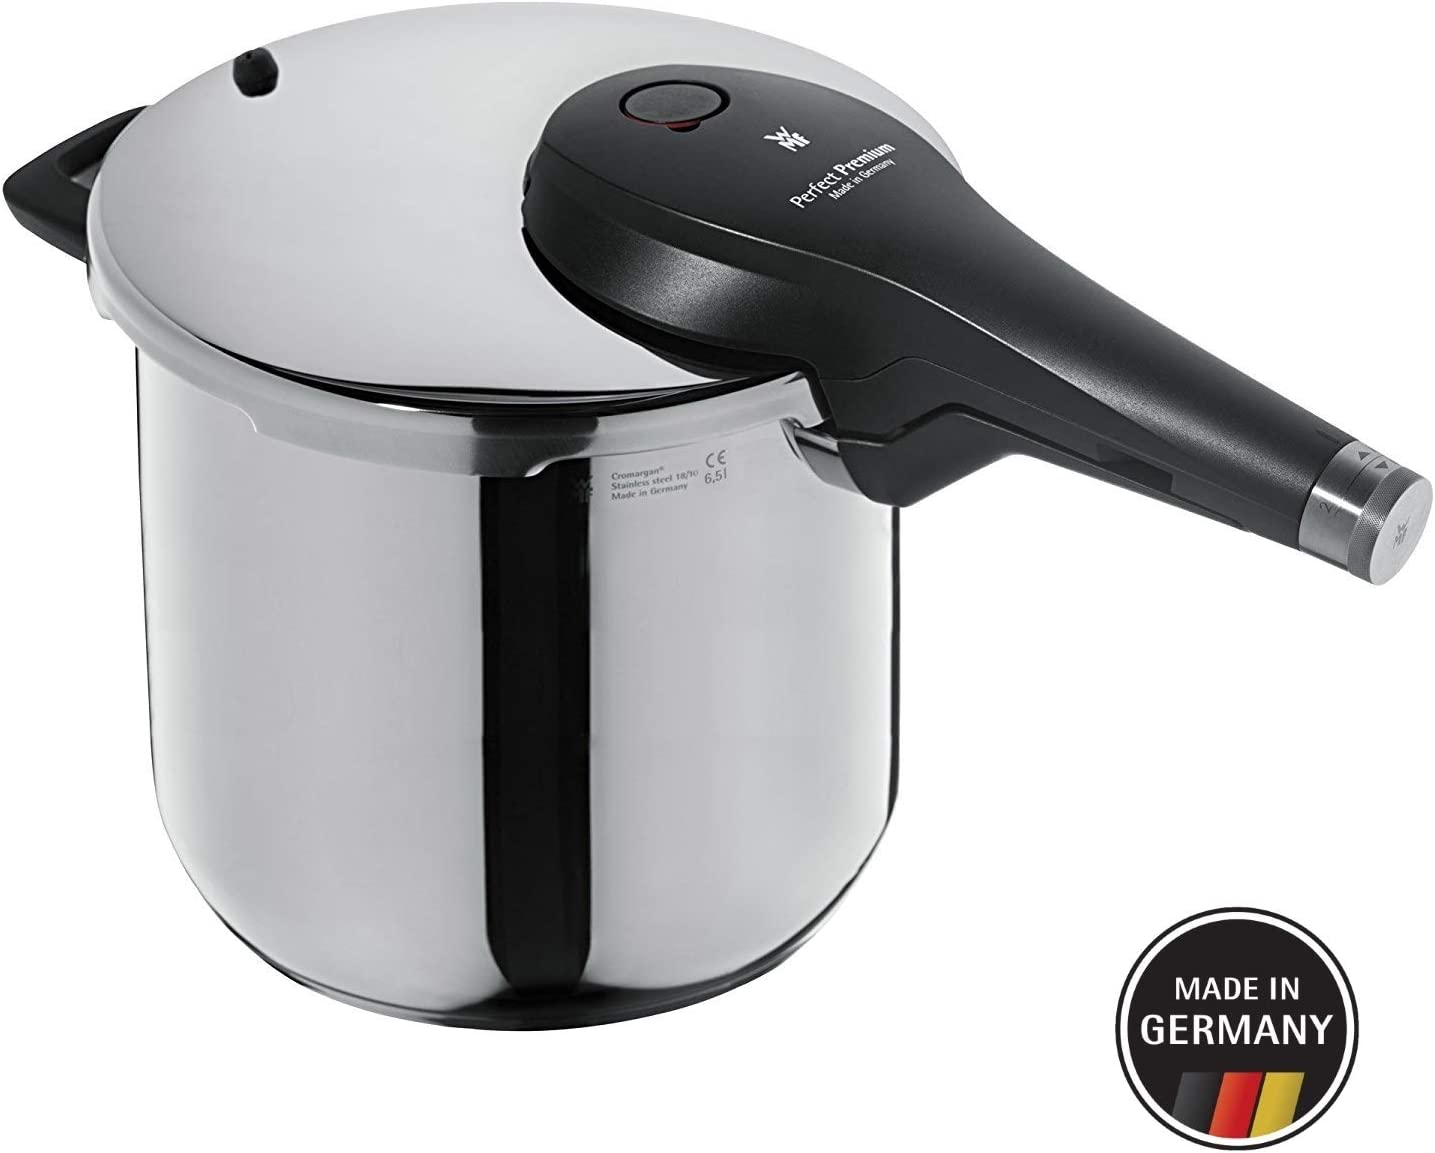 WMF Perfect Premium 6.5 L Pressure Cooker 22 cm, Stainless Steel, Transparent, 22 cm